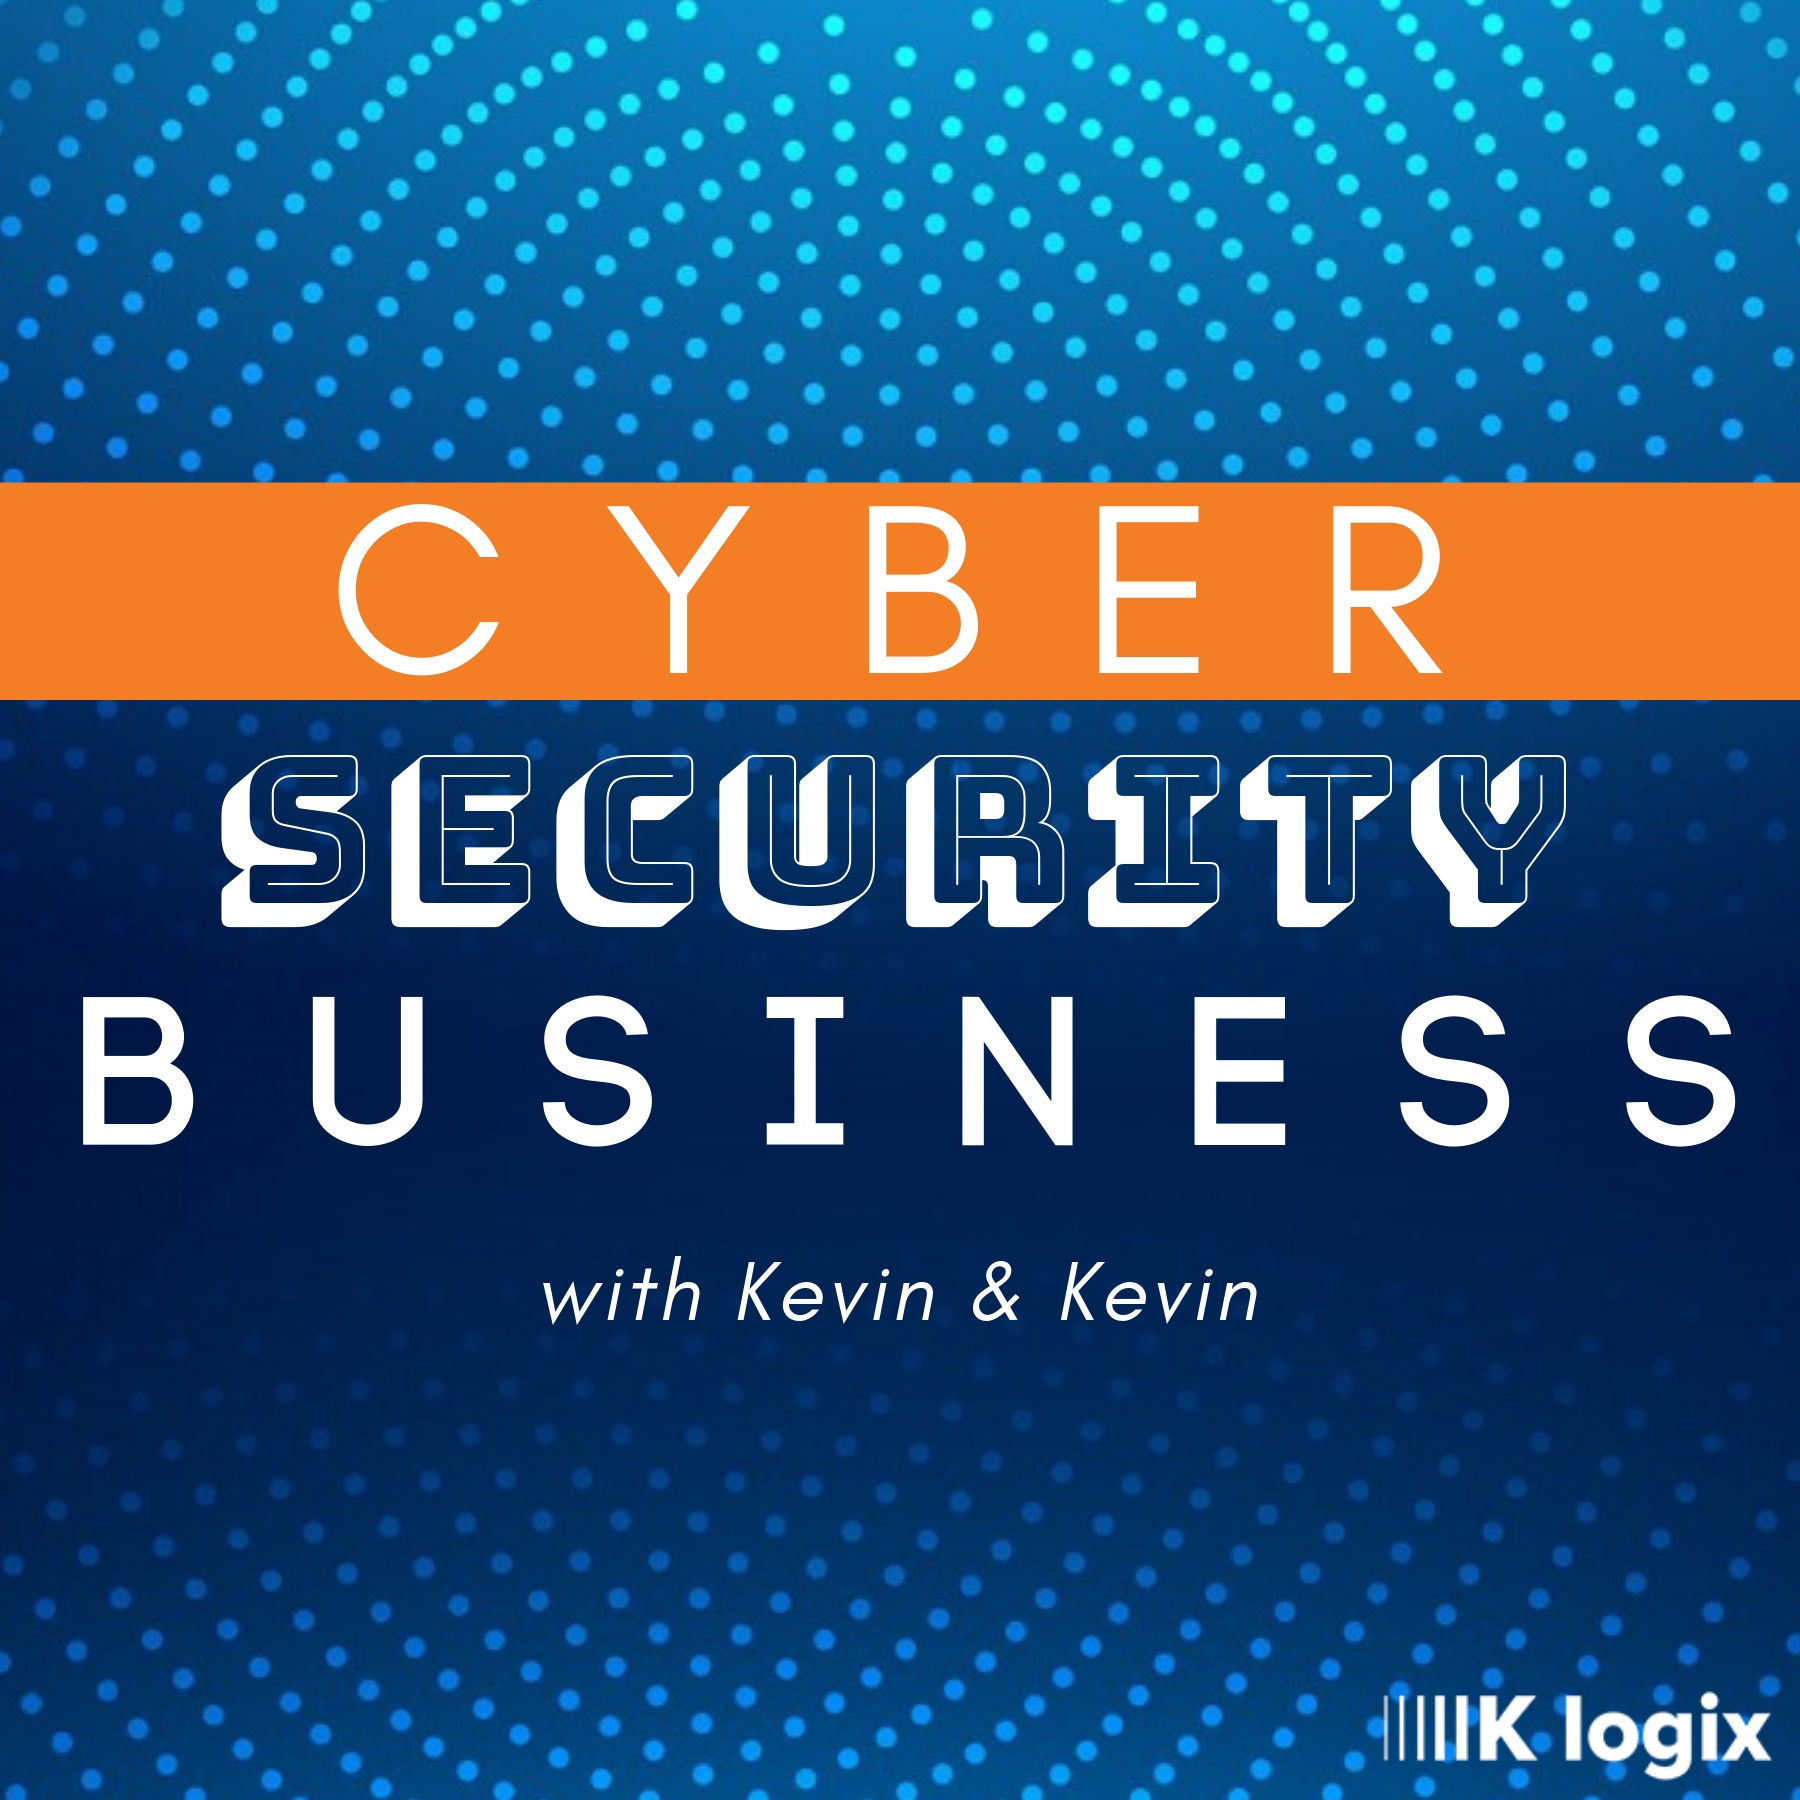 Cyber Security Business